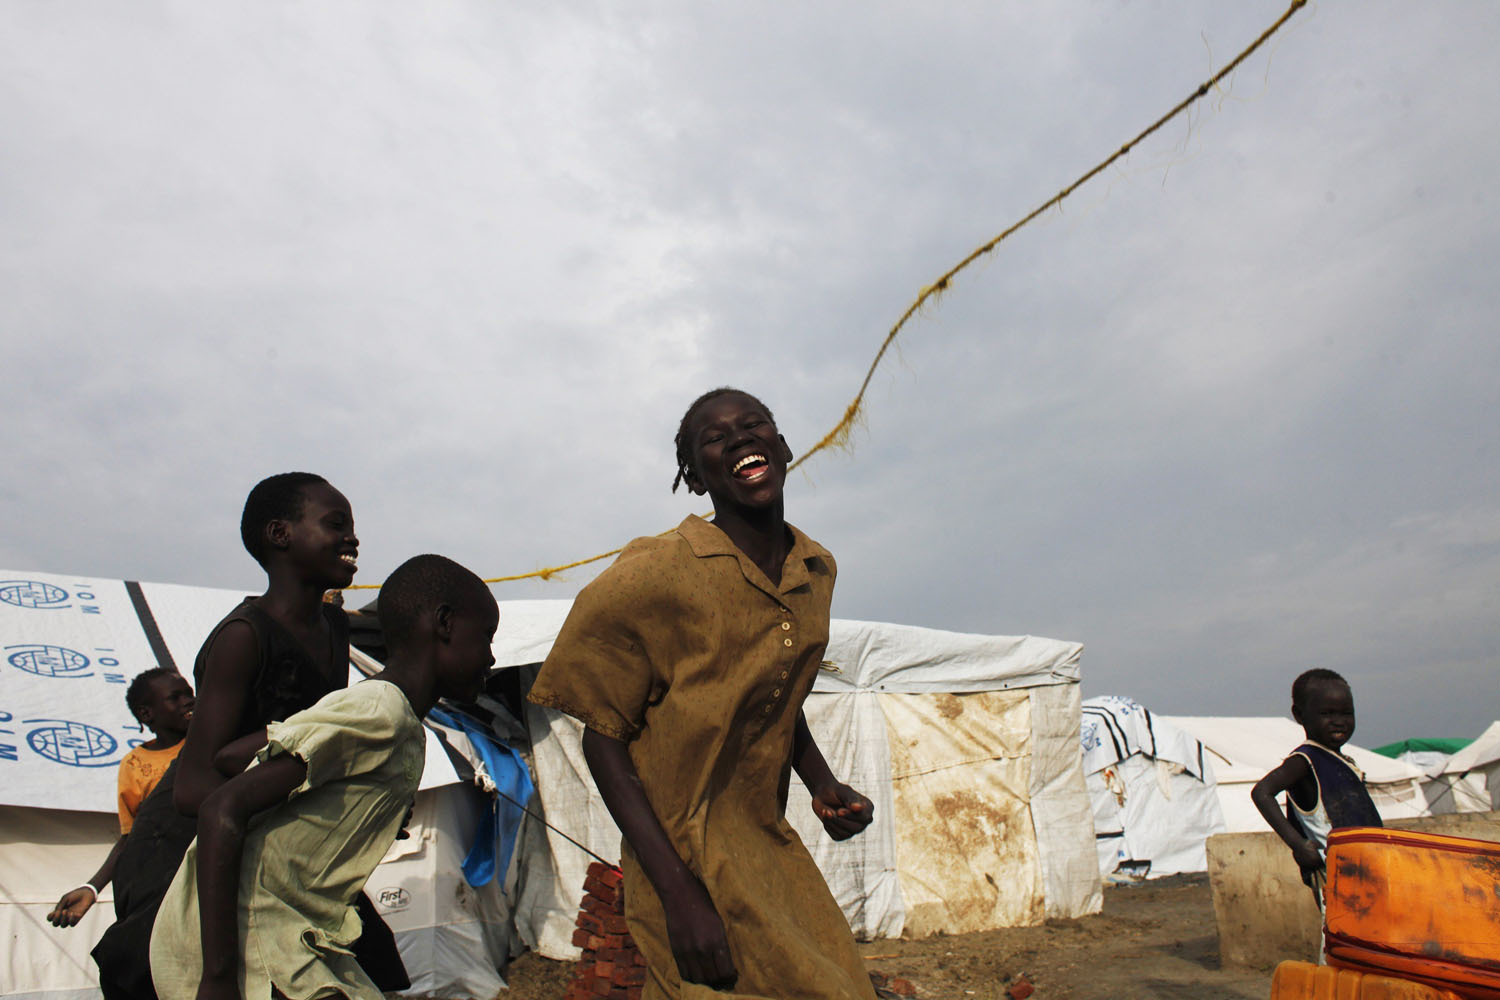 Jul. 24, 2014. Girls play in an internally displaced persons (IDP) camp inside the U.N. base in Malakal, South Sudan.